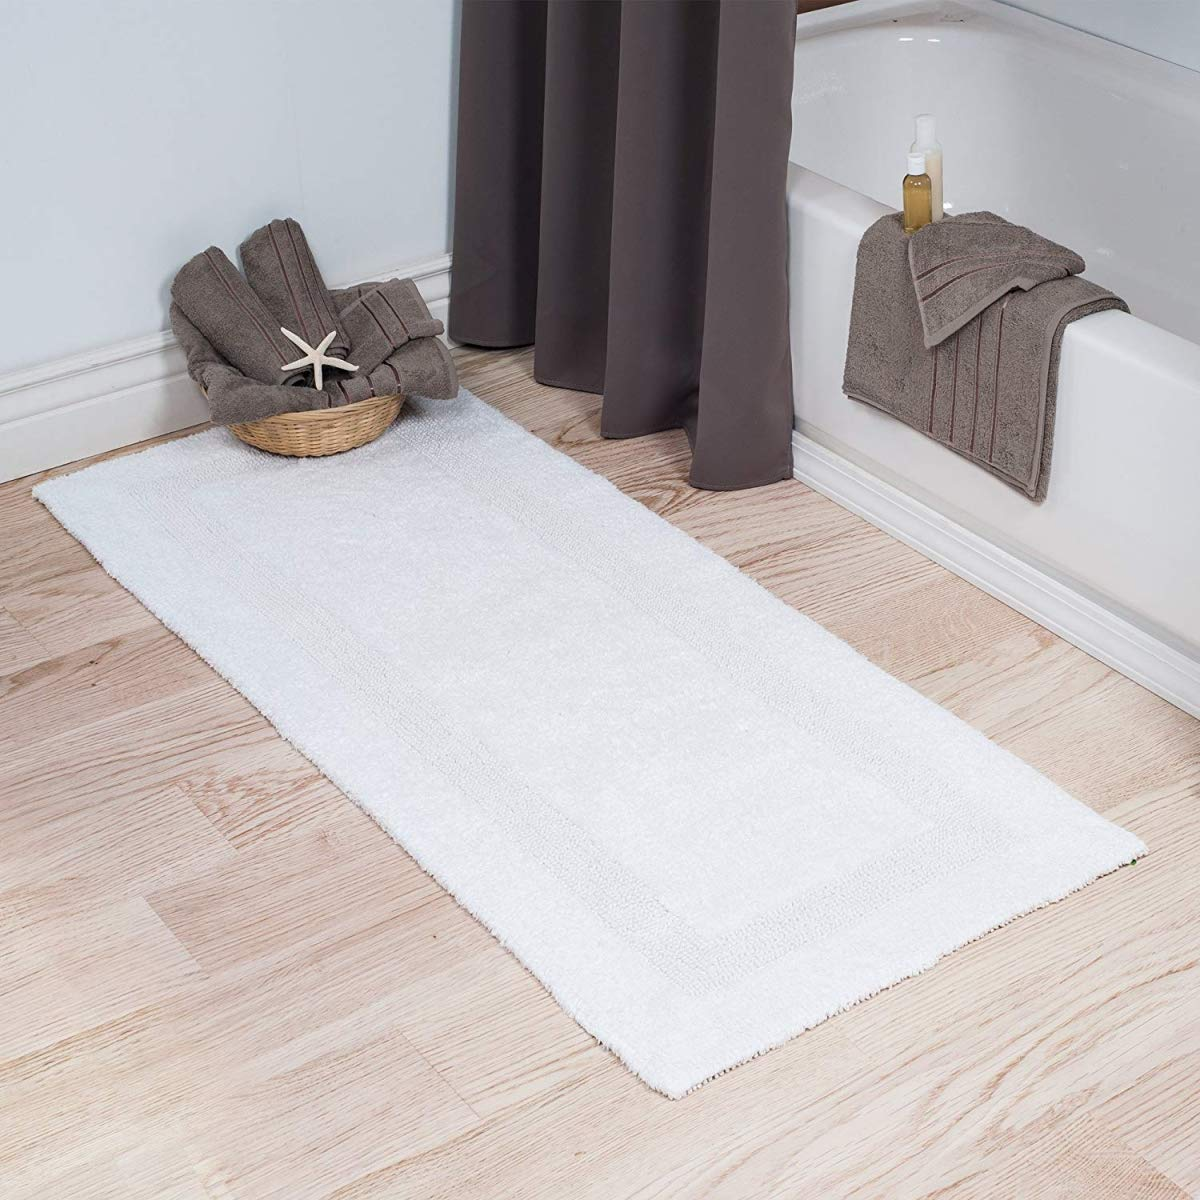 Bedford Home 100% Cotton Reversible Long Bath Rug - White - 24x60 by Bedford Home